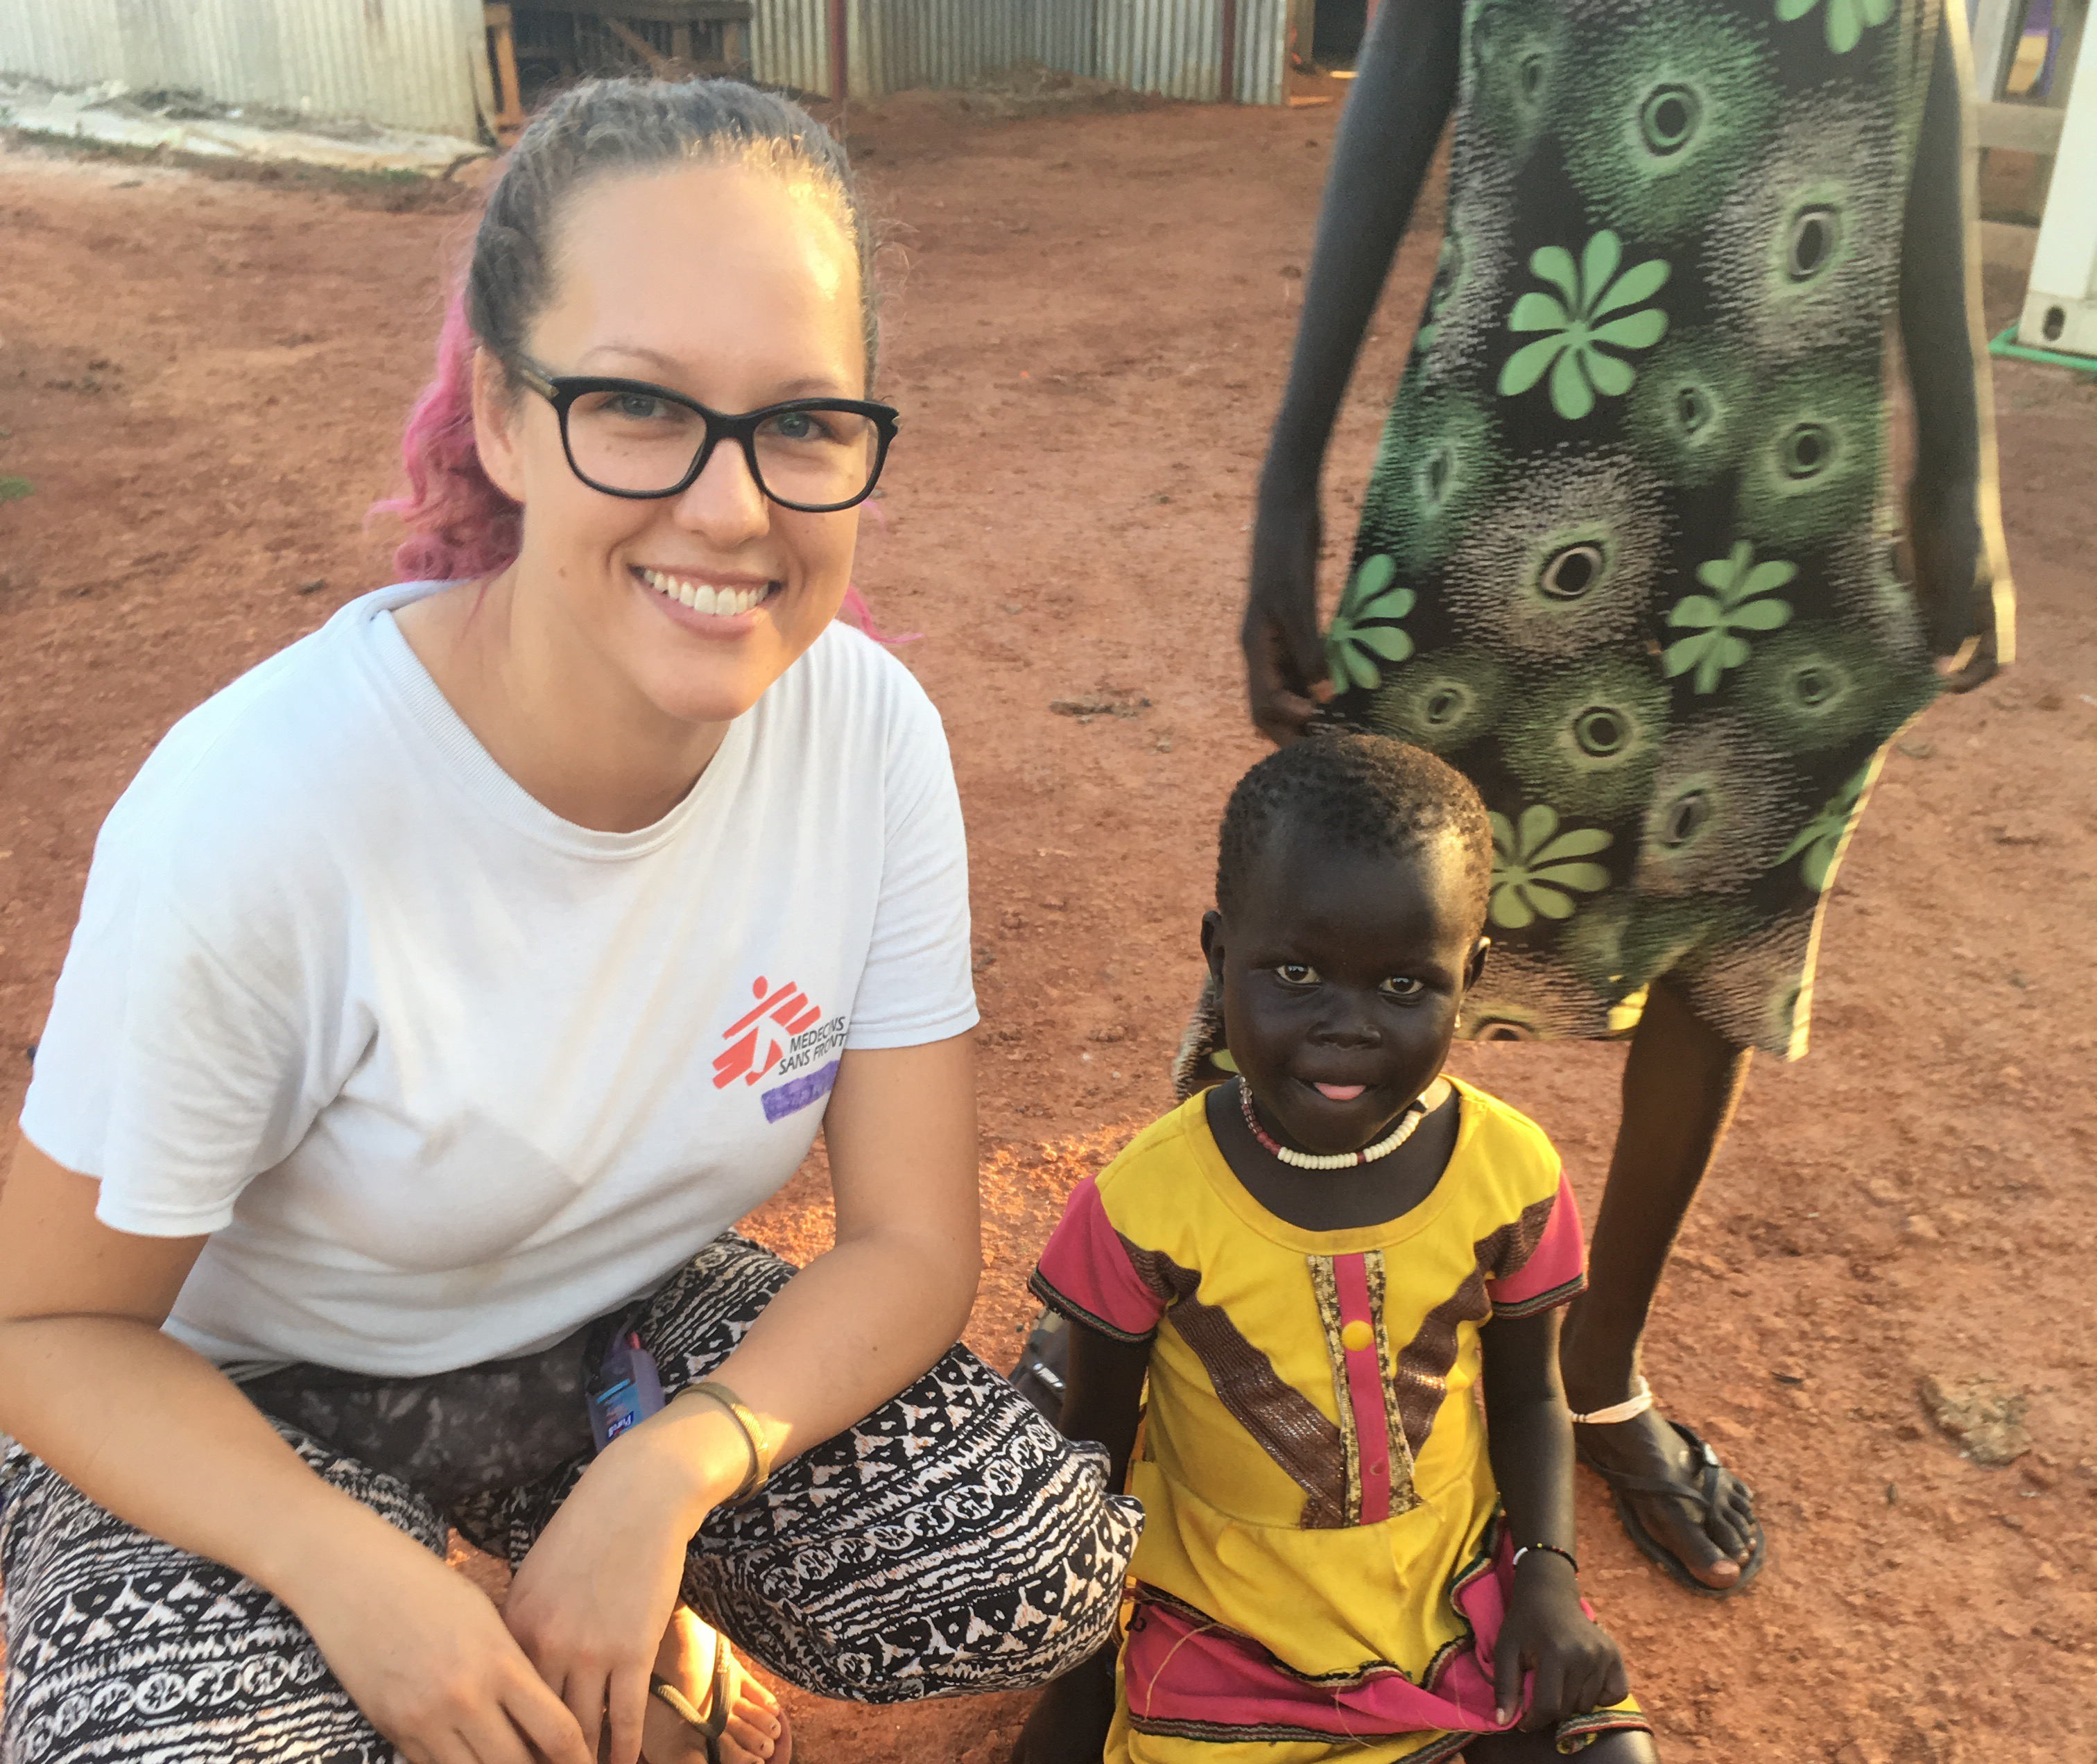 Doctors Without Borders nurse, Samantha Hardeman, with a young patient in South Sudan.